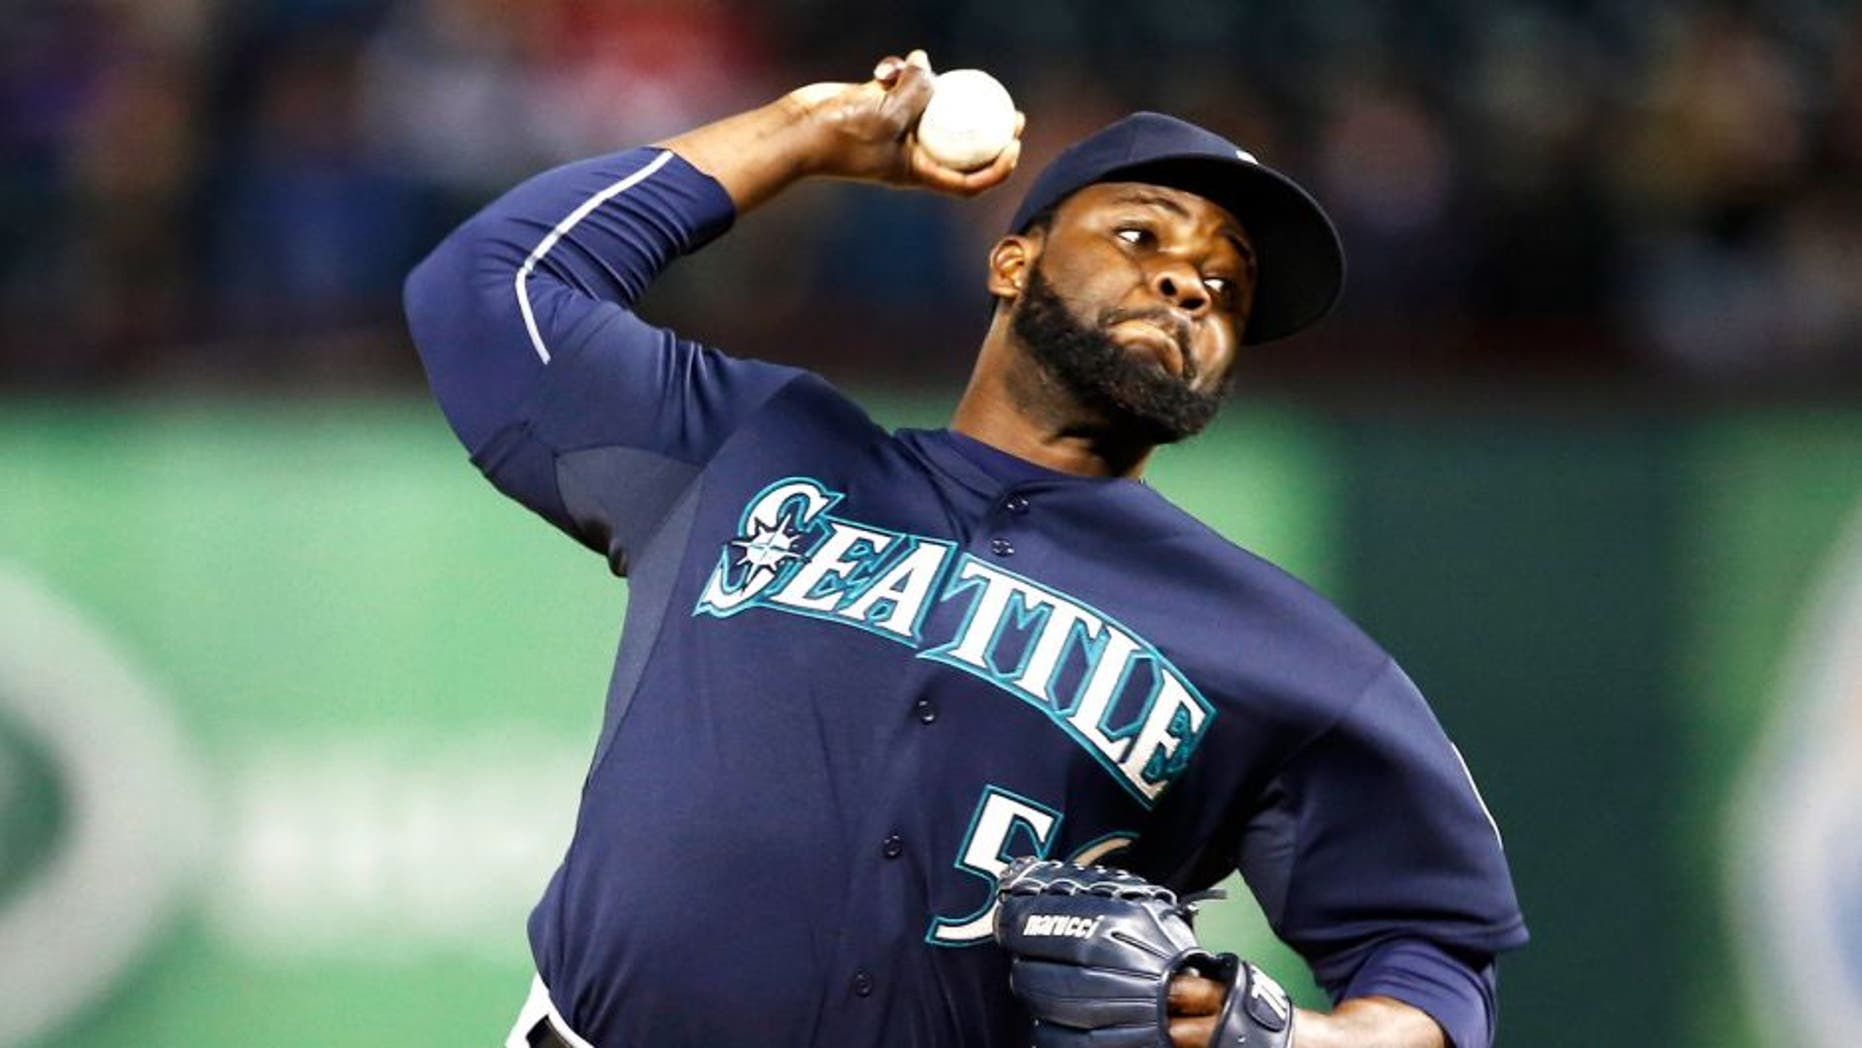 Apr 28, 2015; Arlington, TX, USA; Seattle Mariners relief pitcher Fernando Rodney (56) delivers a pitch to the Texas Rangers during the ninth inning of a baseball game at Globe Life Park in Arlington. The Mariners won 2-1. Mandatory Credit: Jim Cowsert-USA TODAY Sports